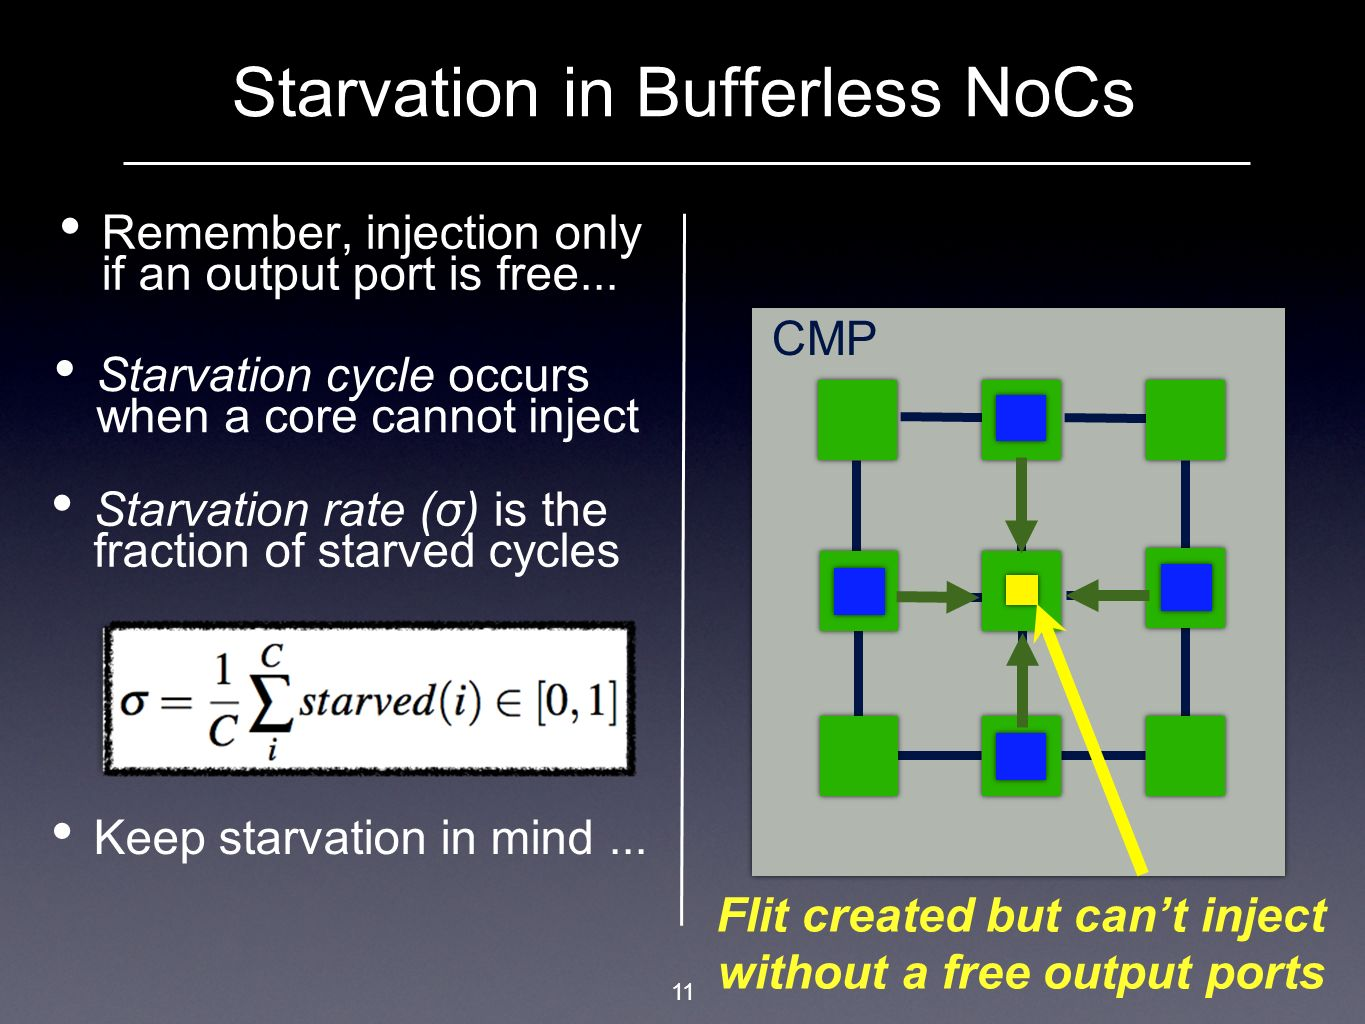 Starvation in Bufferless NoCs